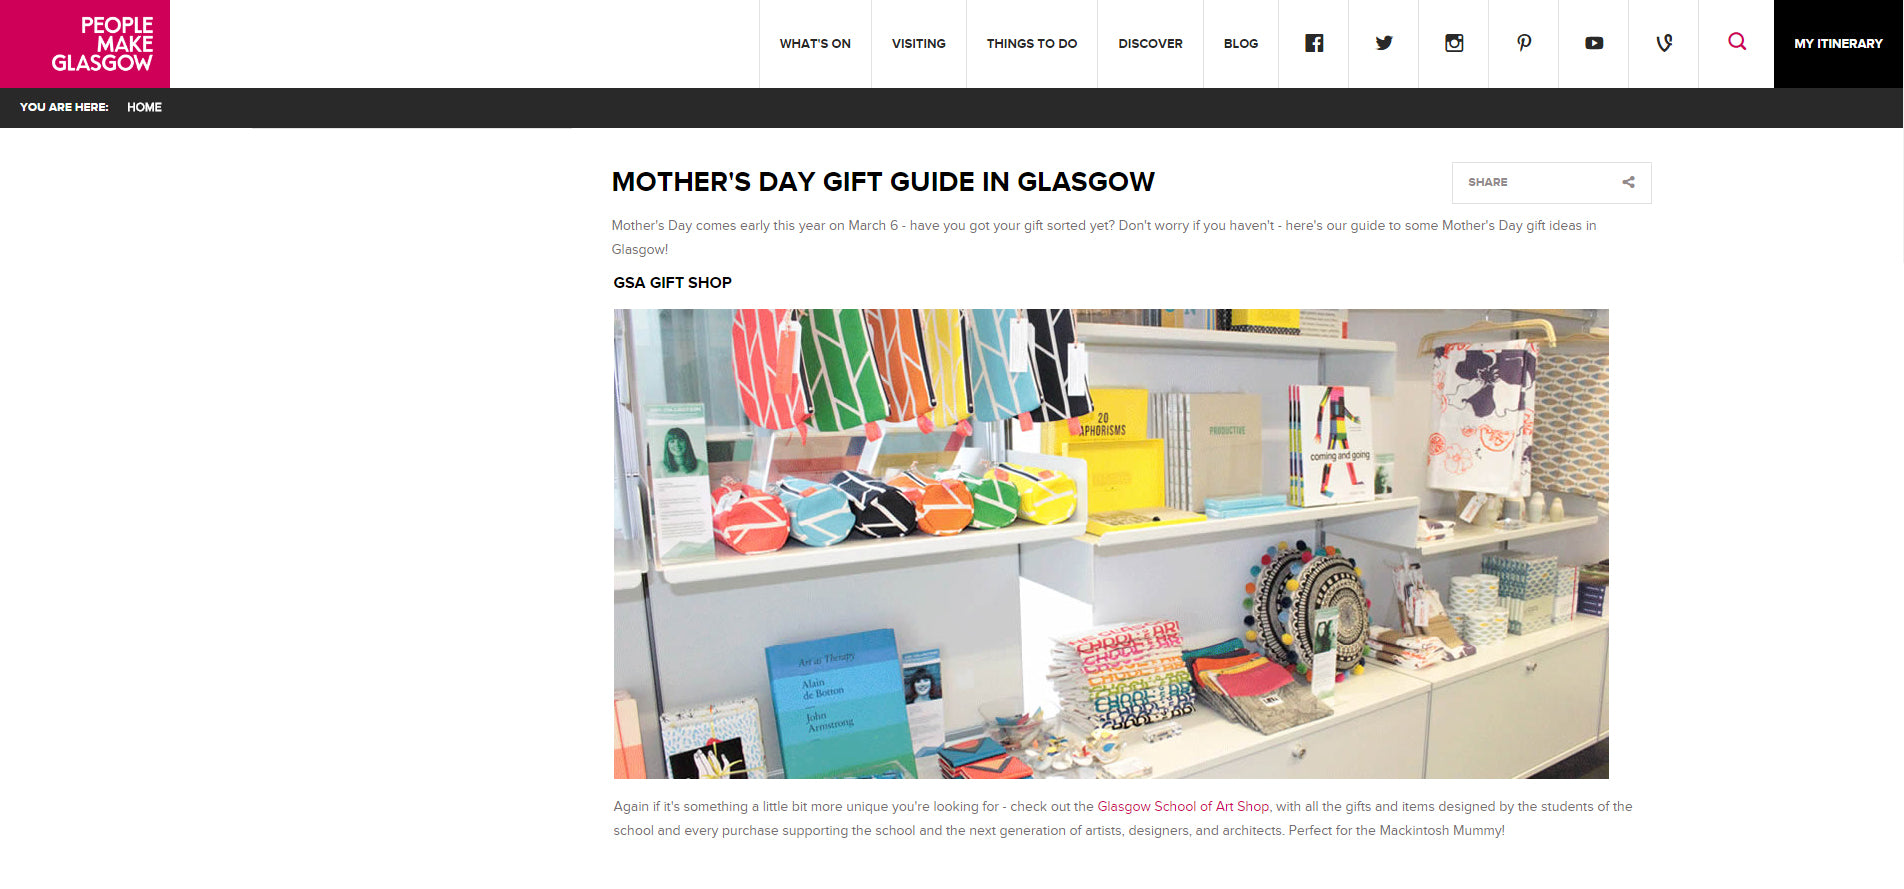 People Make Glasgow's Mother's Day gift guide